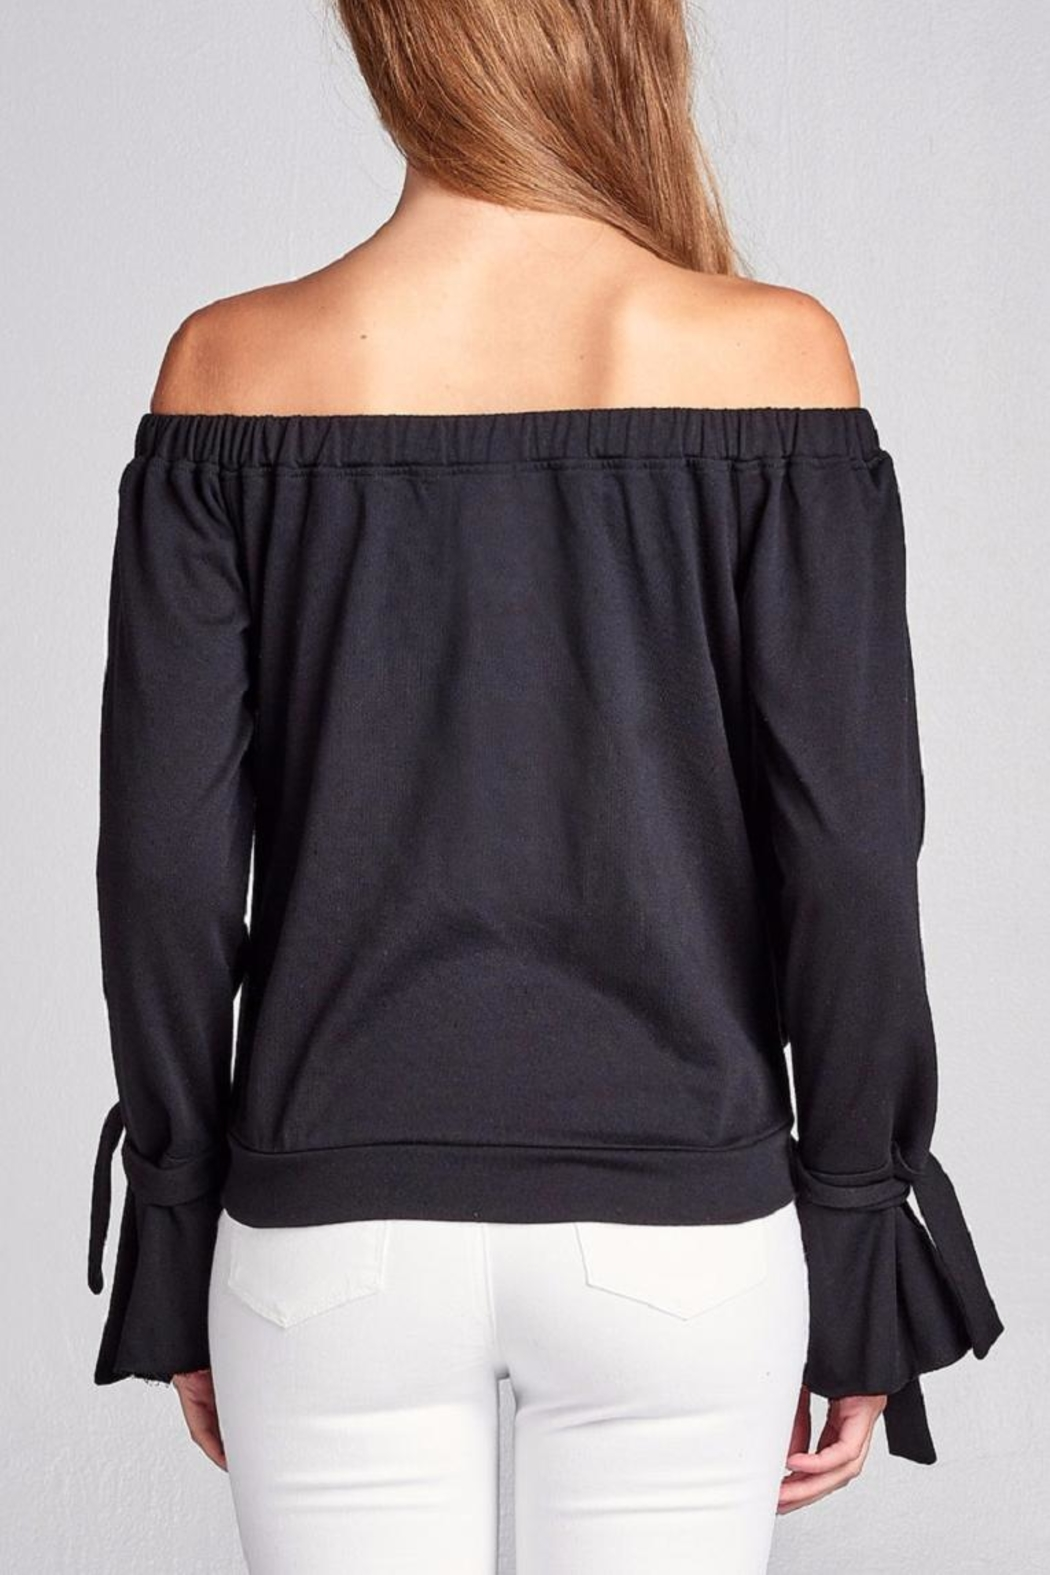 Active Basic Black Knit Top - Front Full Image